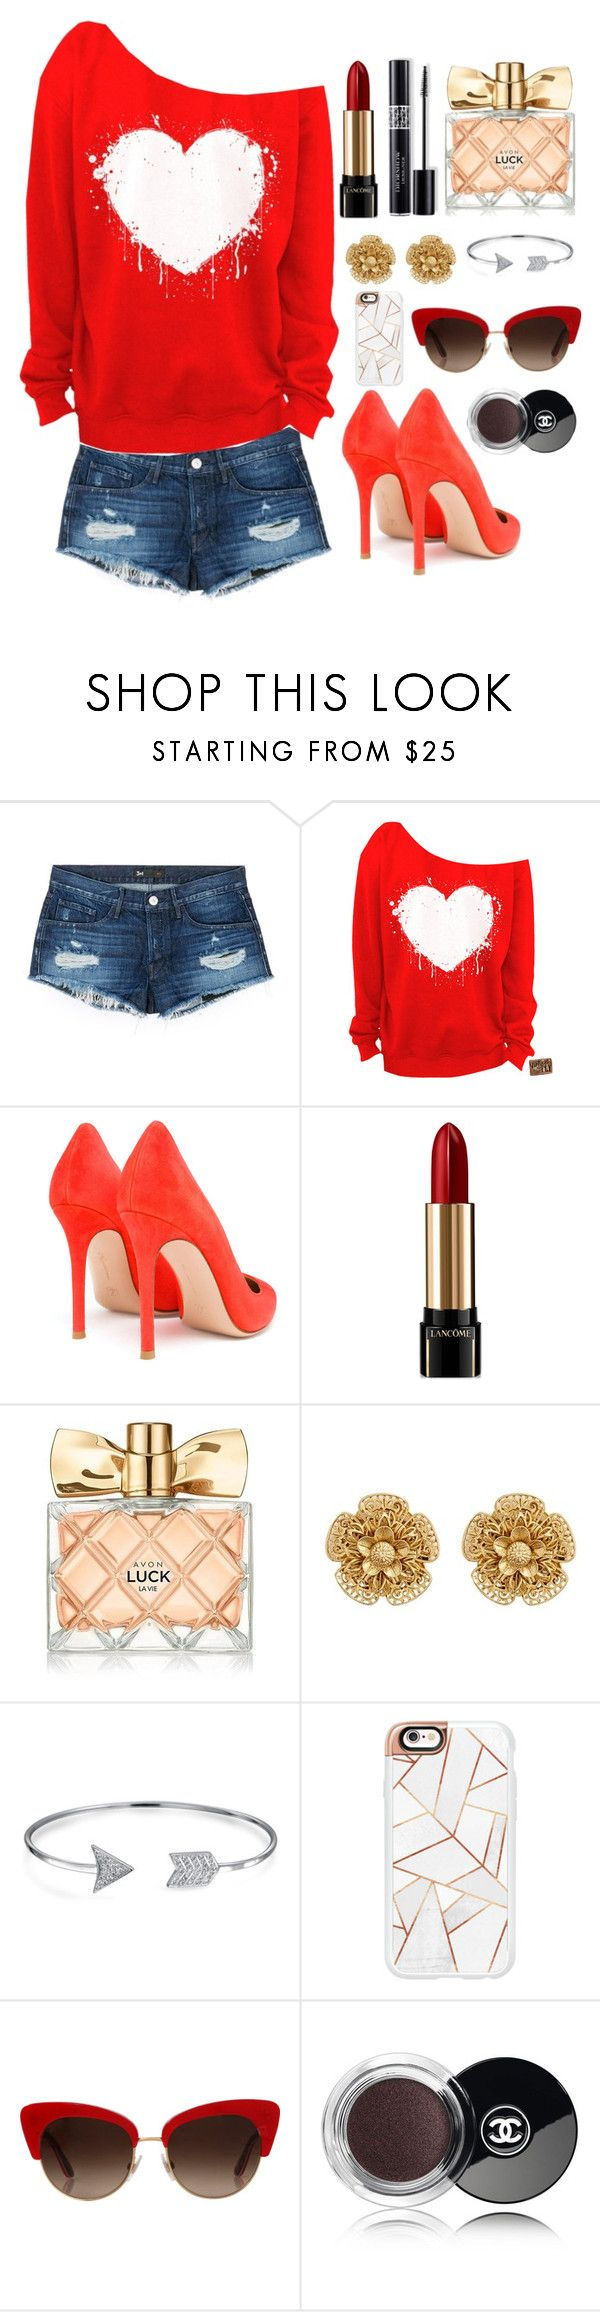 """""""Hyuna red"""" by littleheartz ❤ liked on Polyvore featuring 3x1, Gianvito Rossi, Christian Dior, Lancôme, Avon, Miriam Haskell, Bling Jewelry, Casetify, Dolce&Gabbana and Chanel"""